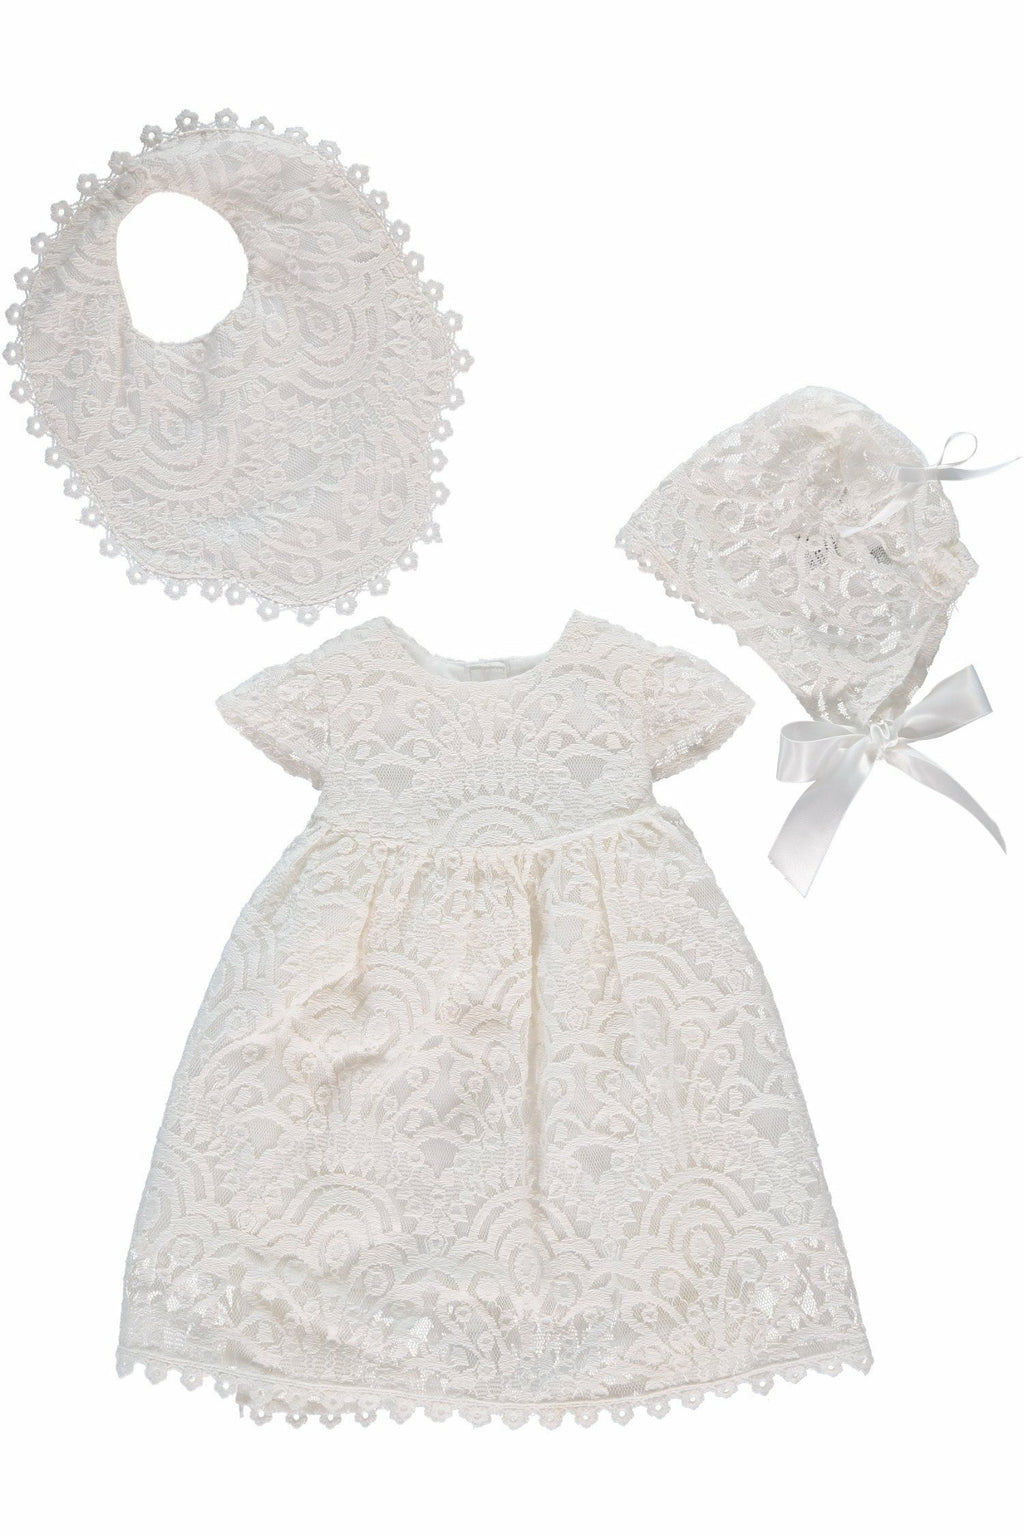 Baby Girl Special Occasion Lace Dress + Bonnet